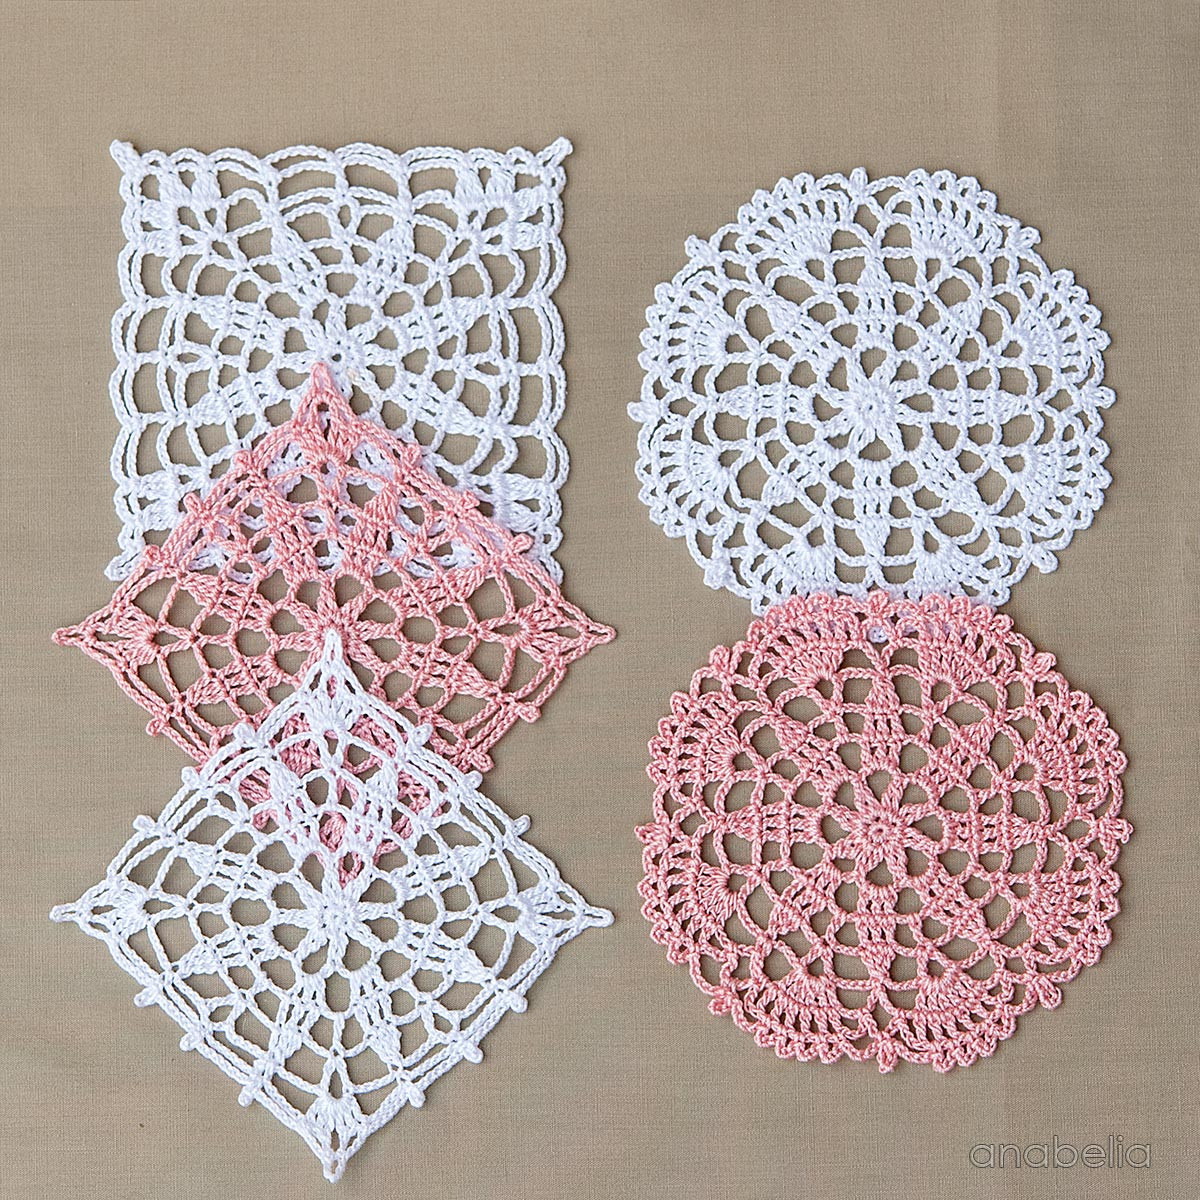 Anabelia craft design Crochet lace motifs in pink and